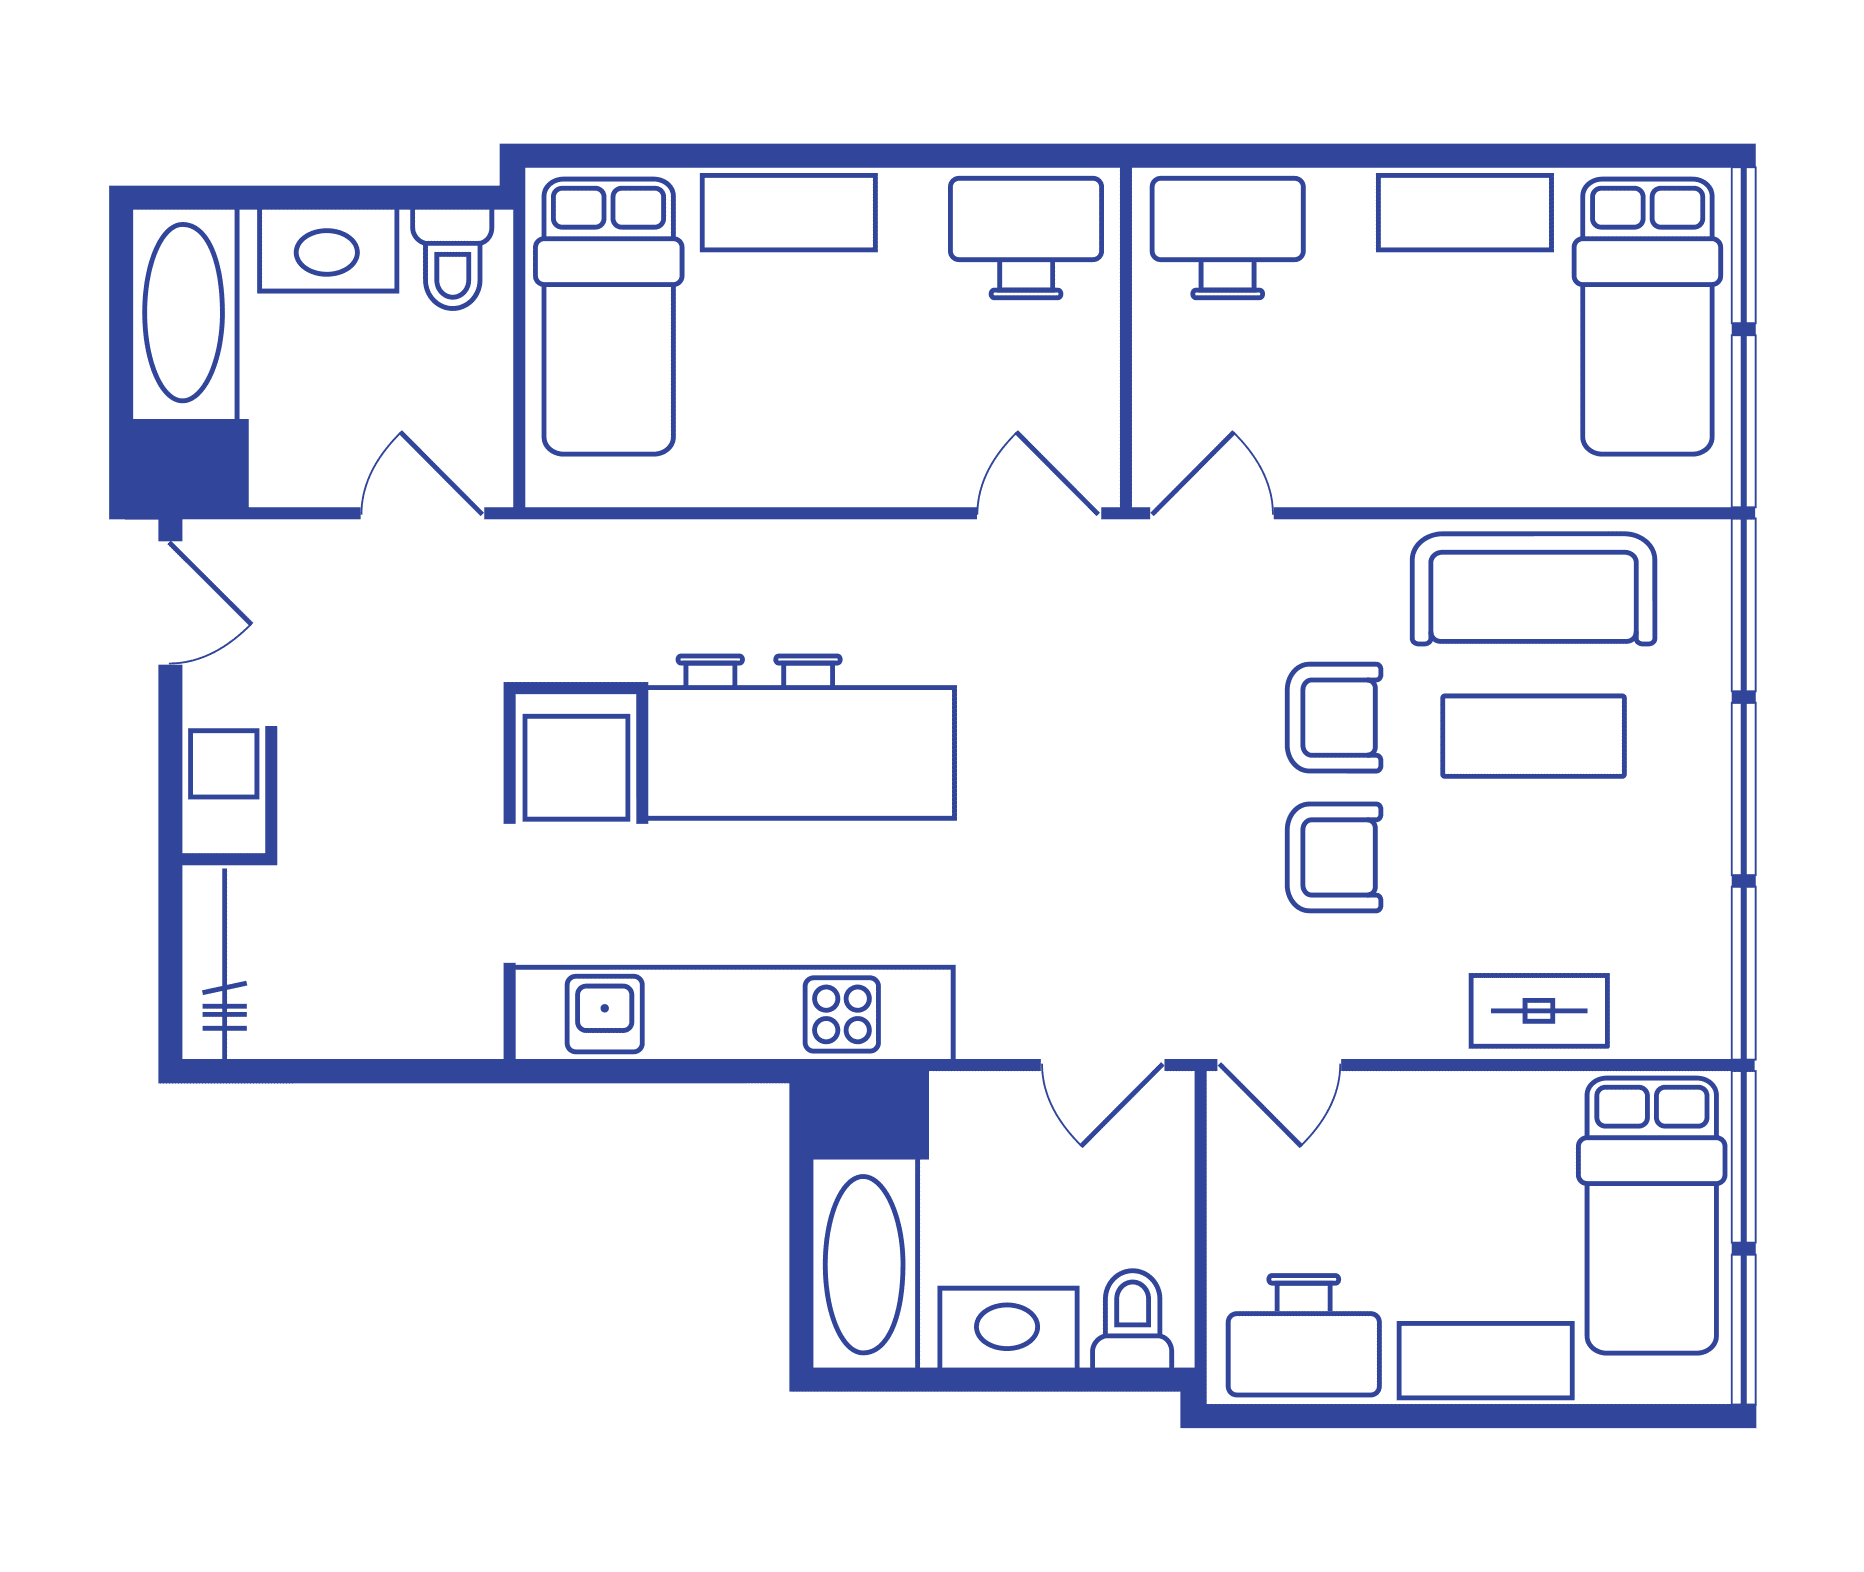 3 Bedroom Floorplan 1